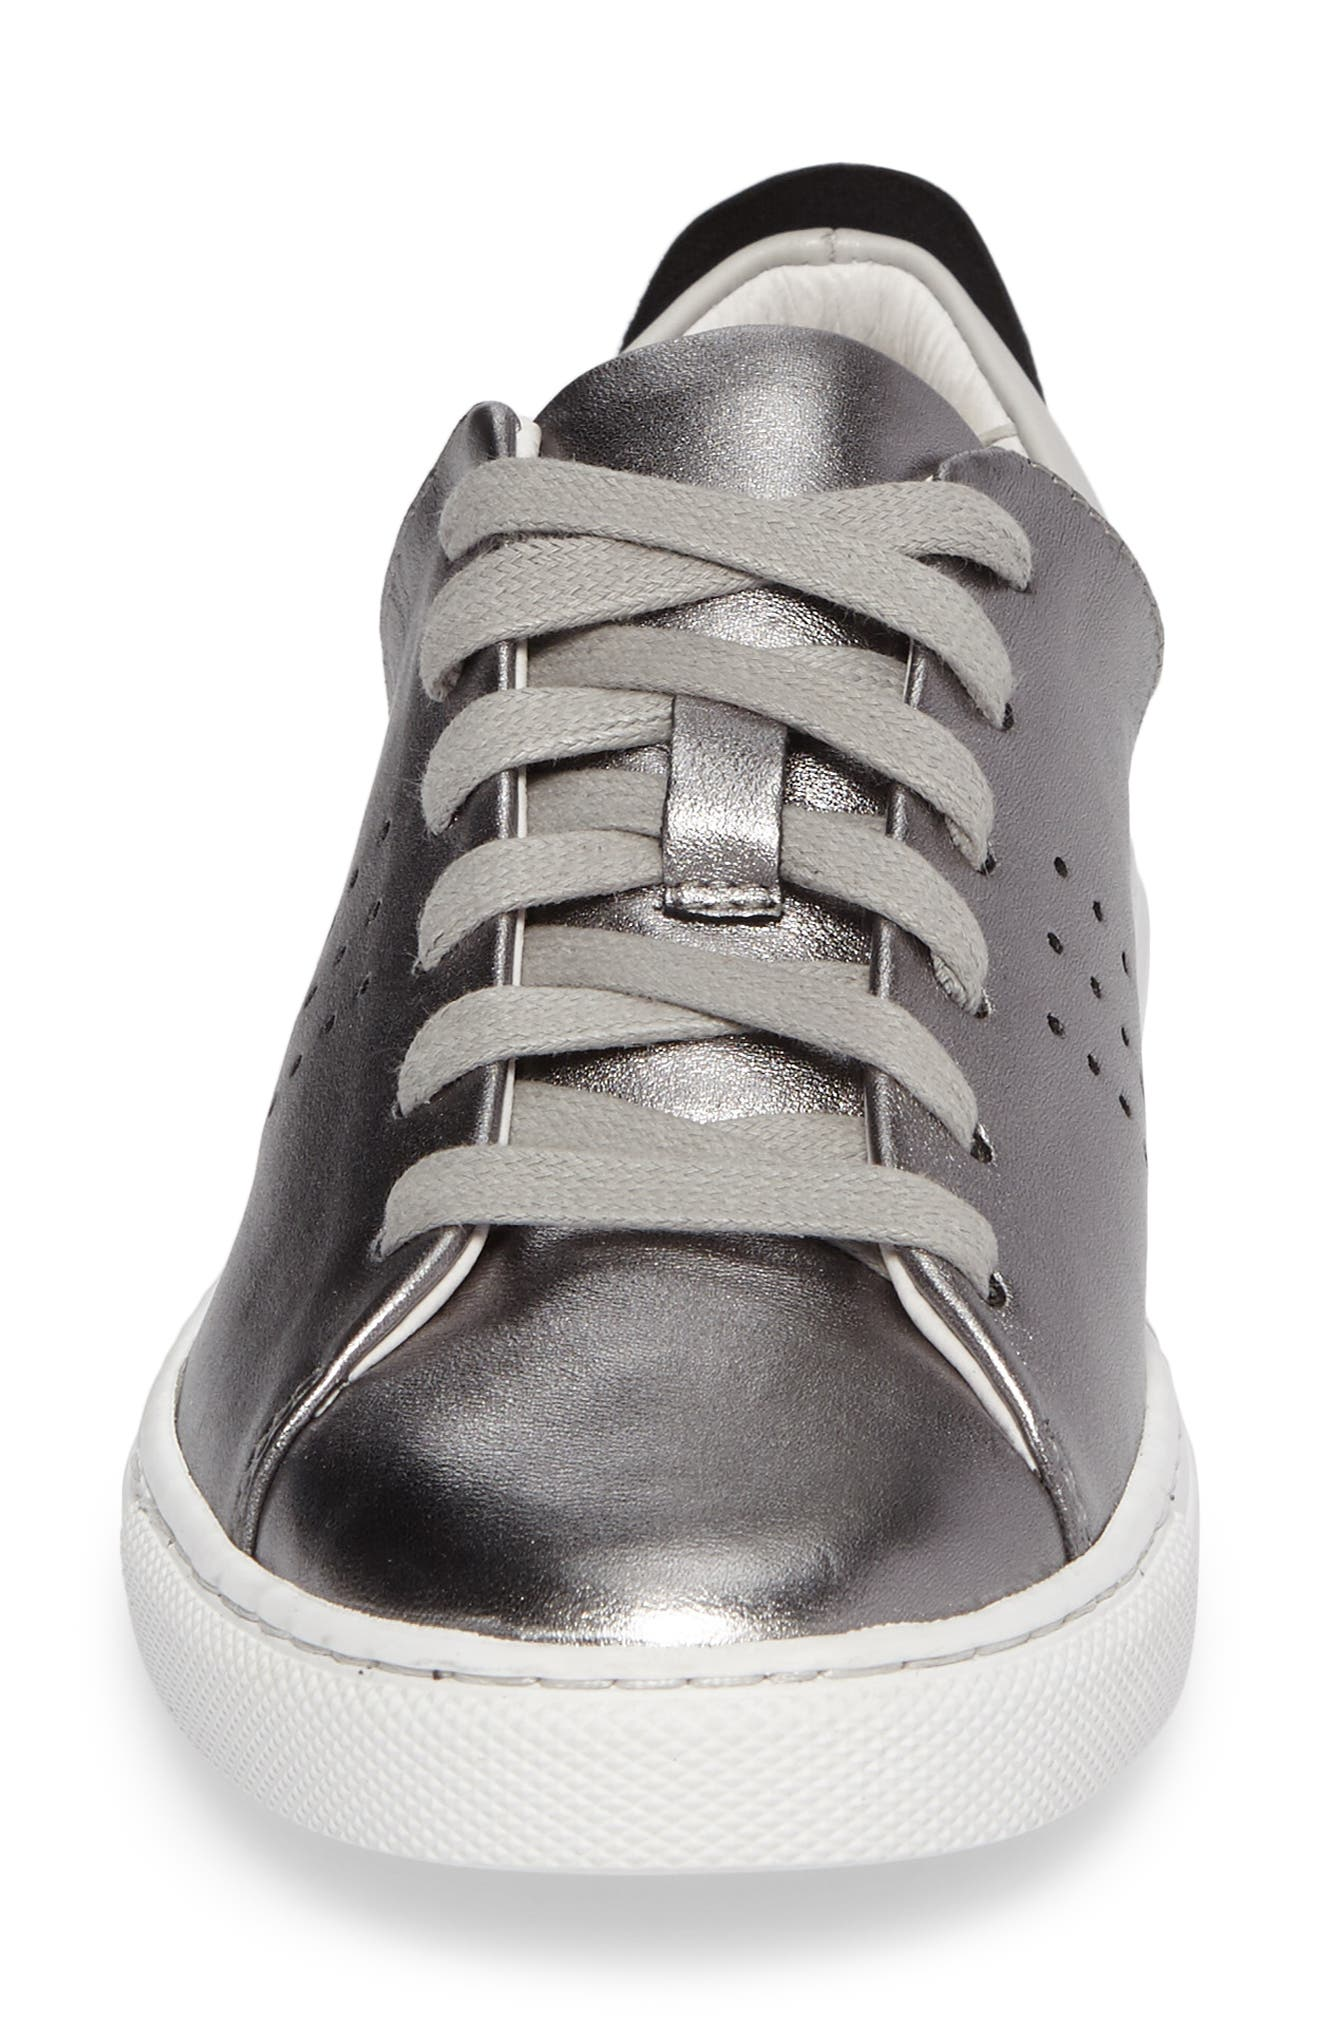 Splits Two-Tone Perforated Sneaker,                             Alternate thumbnail 4, color,                             045